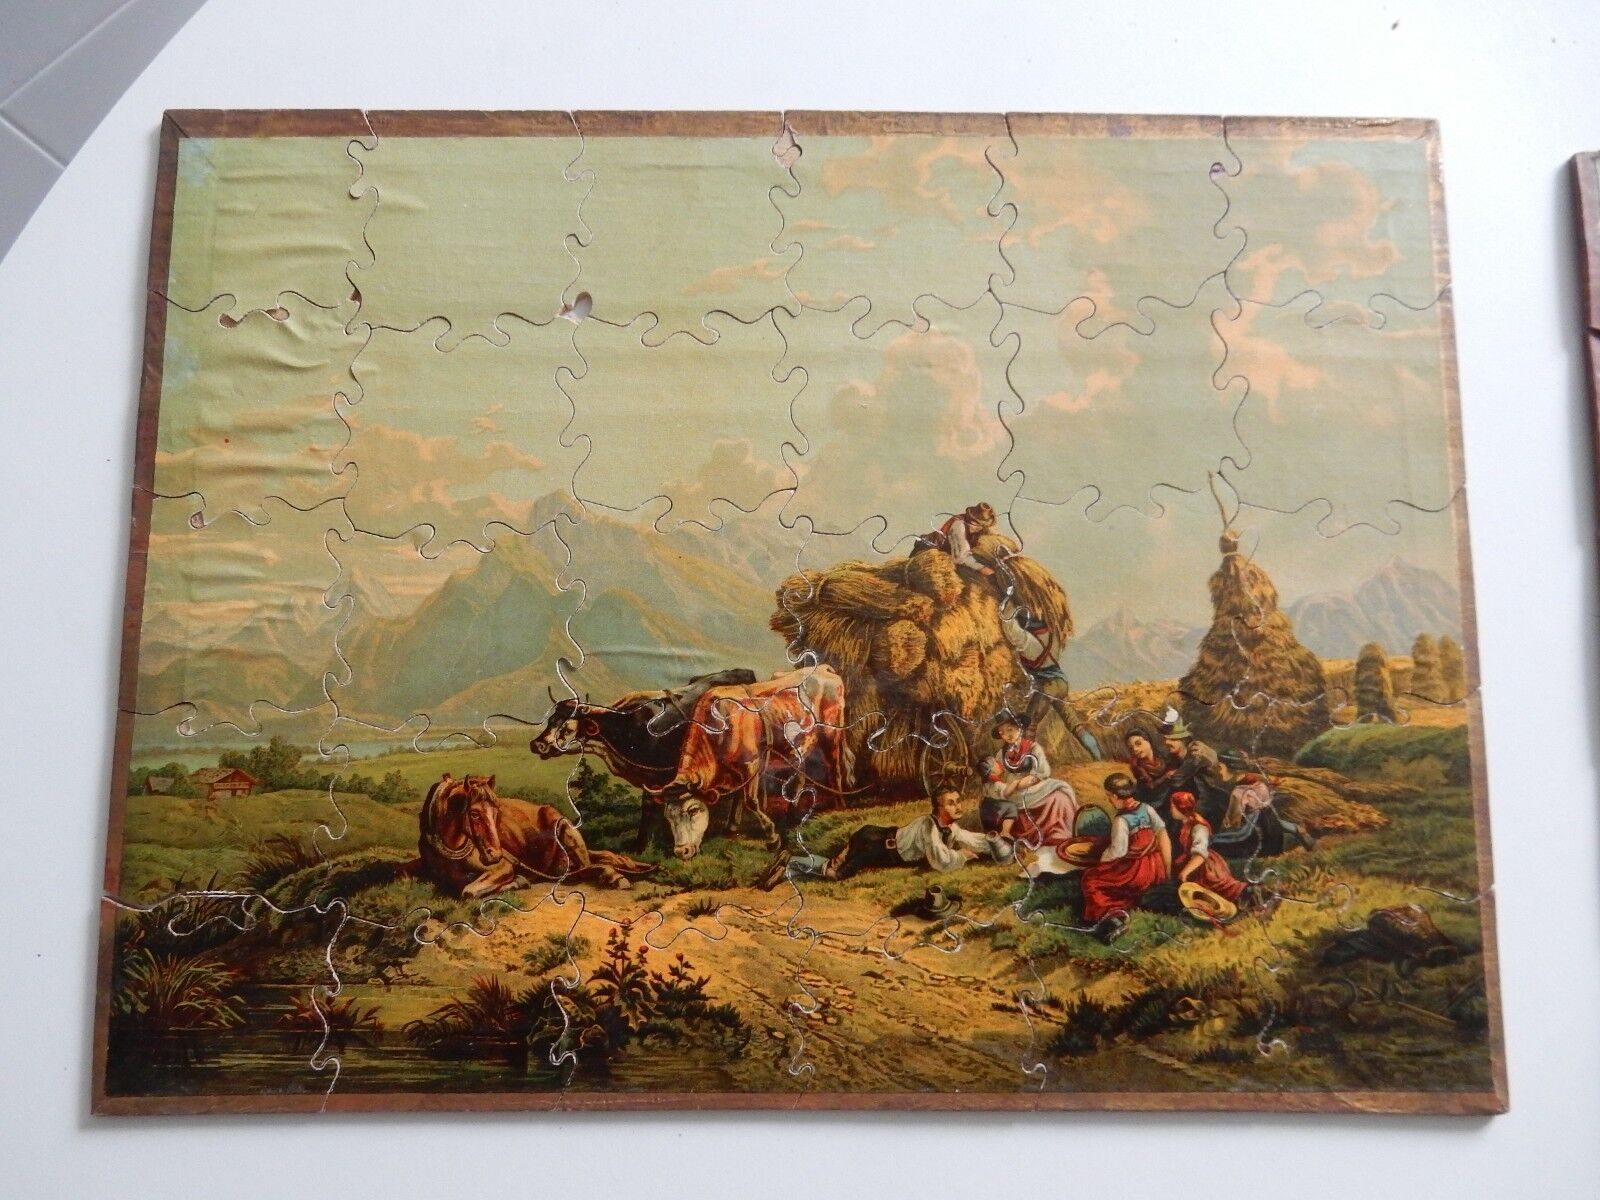 Lithographic wood jigsaw  1870s era  rare item  ALPS AUSTRIA